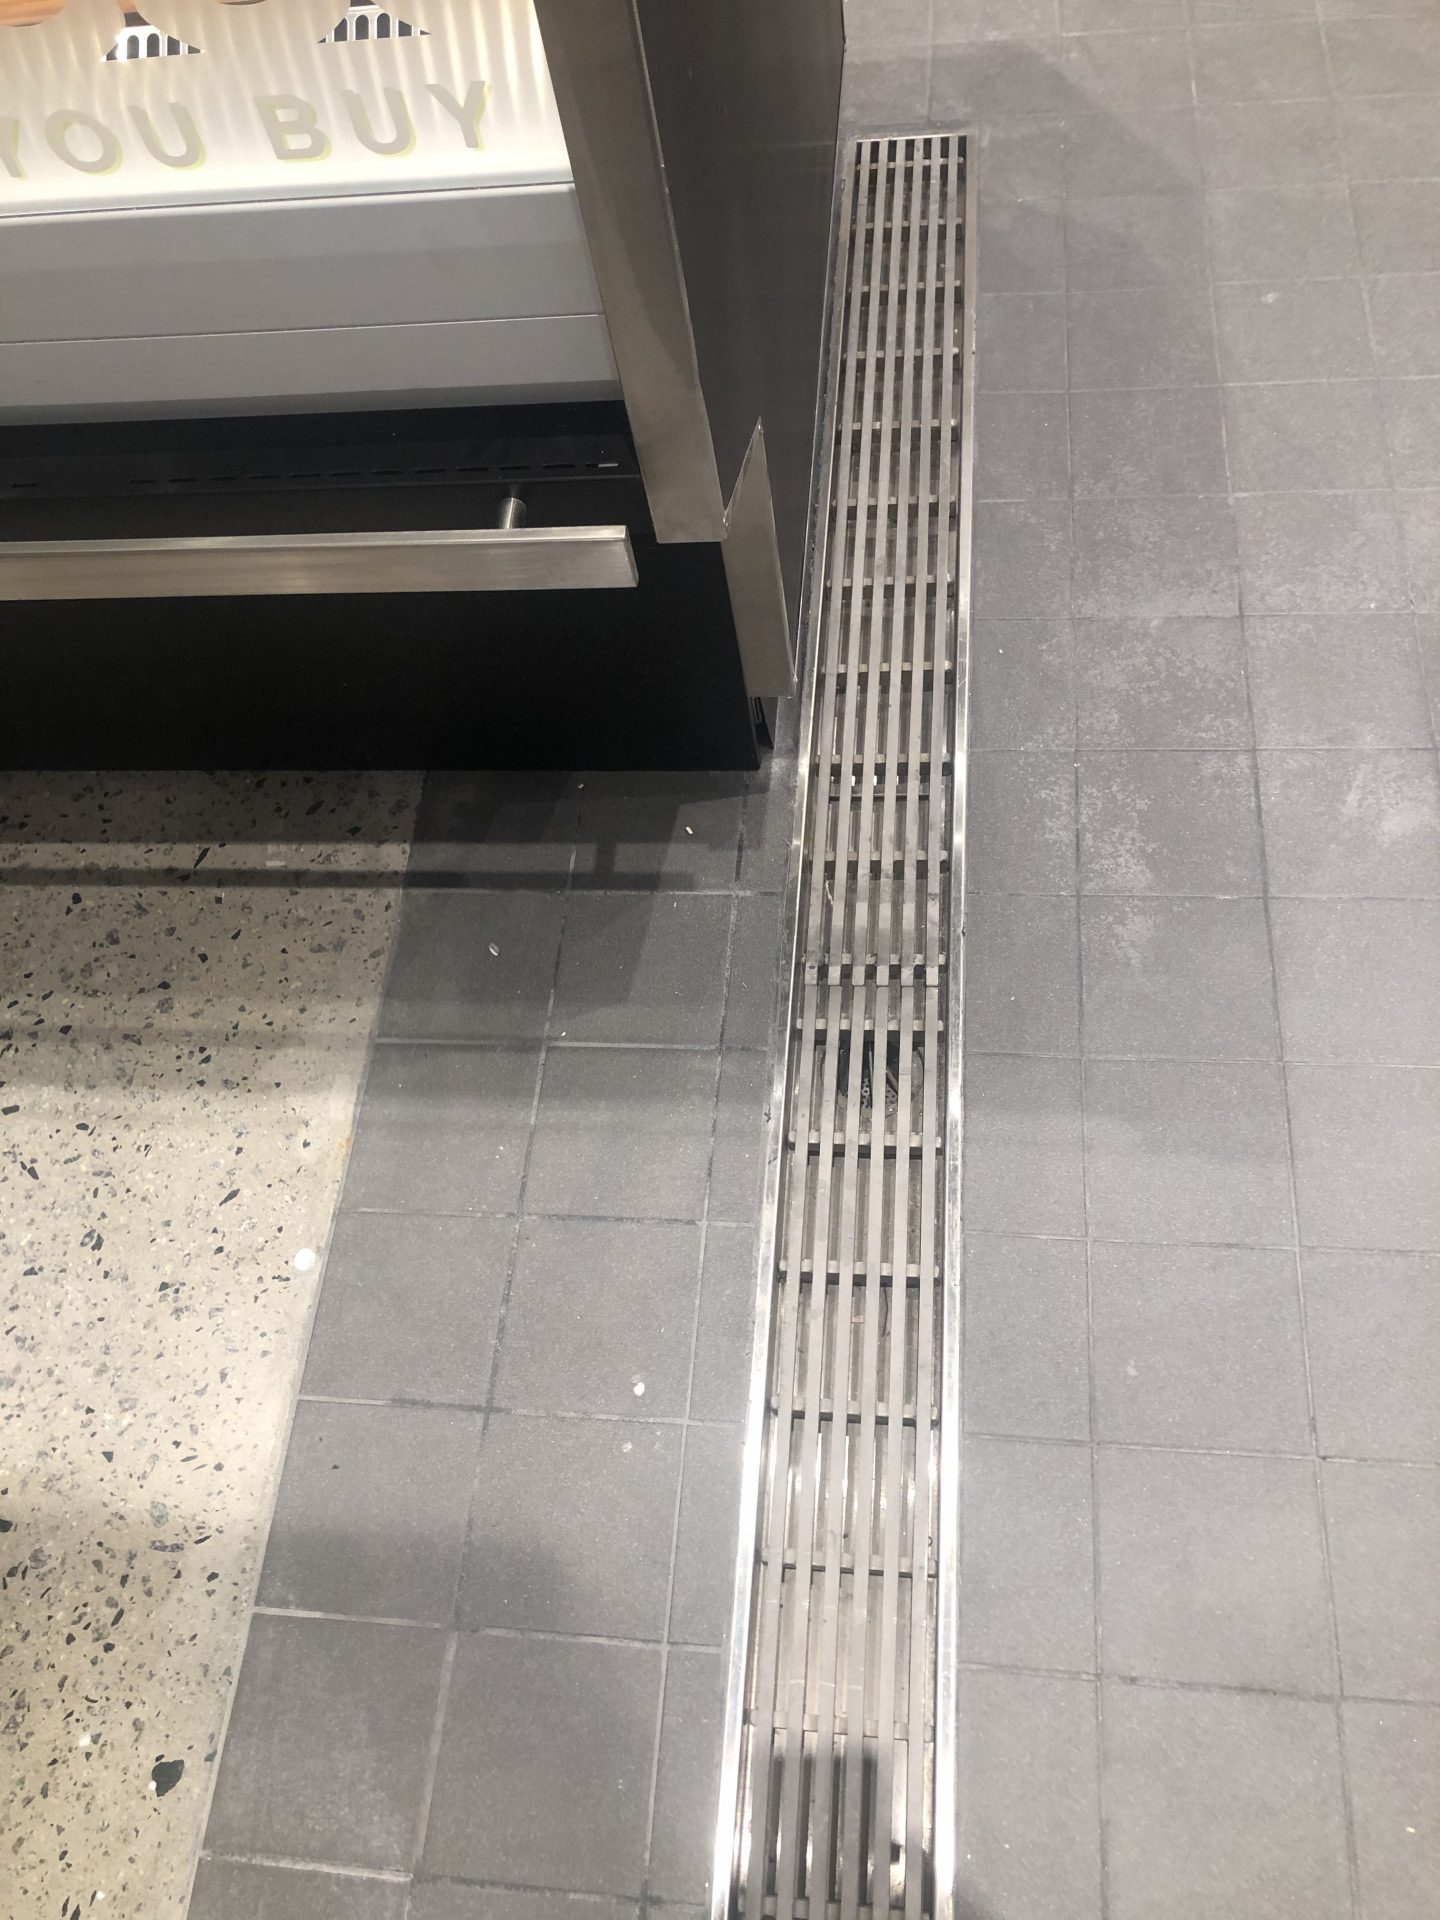 inglewood woolworths square bar close up commercial kitchen